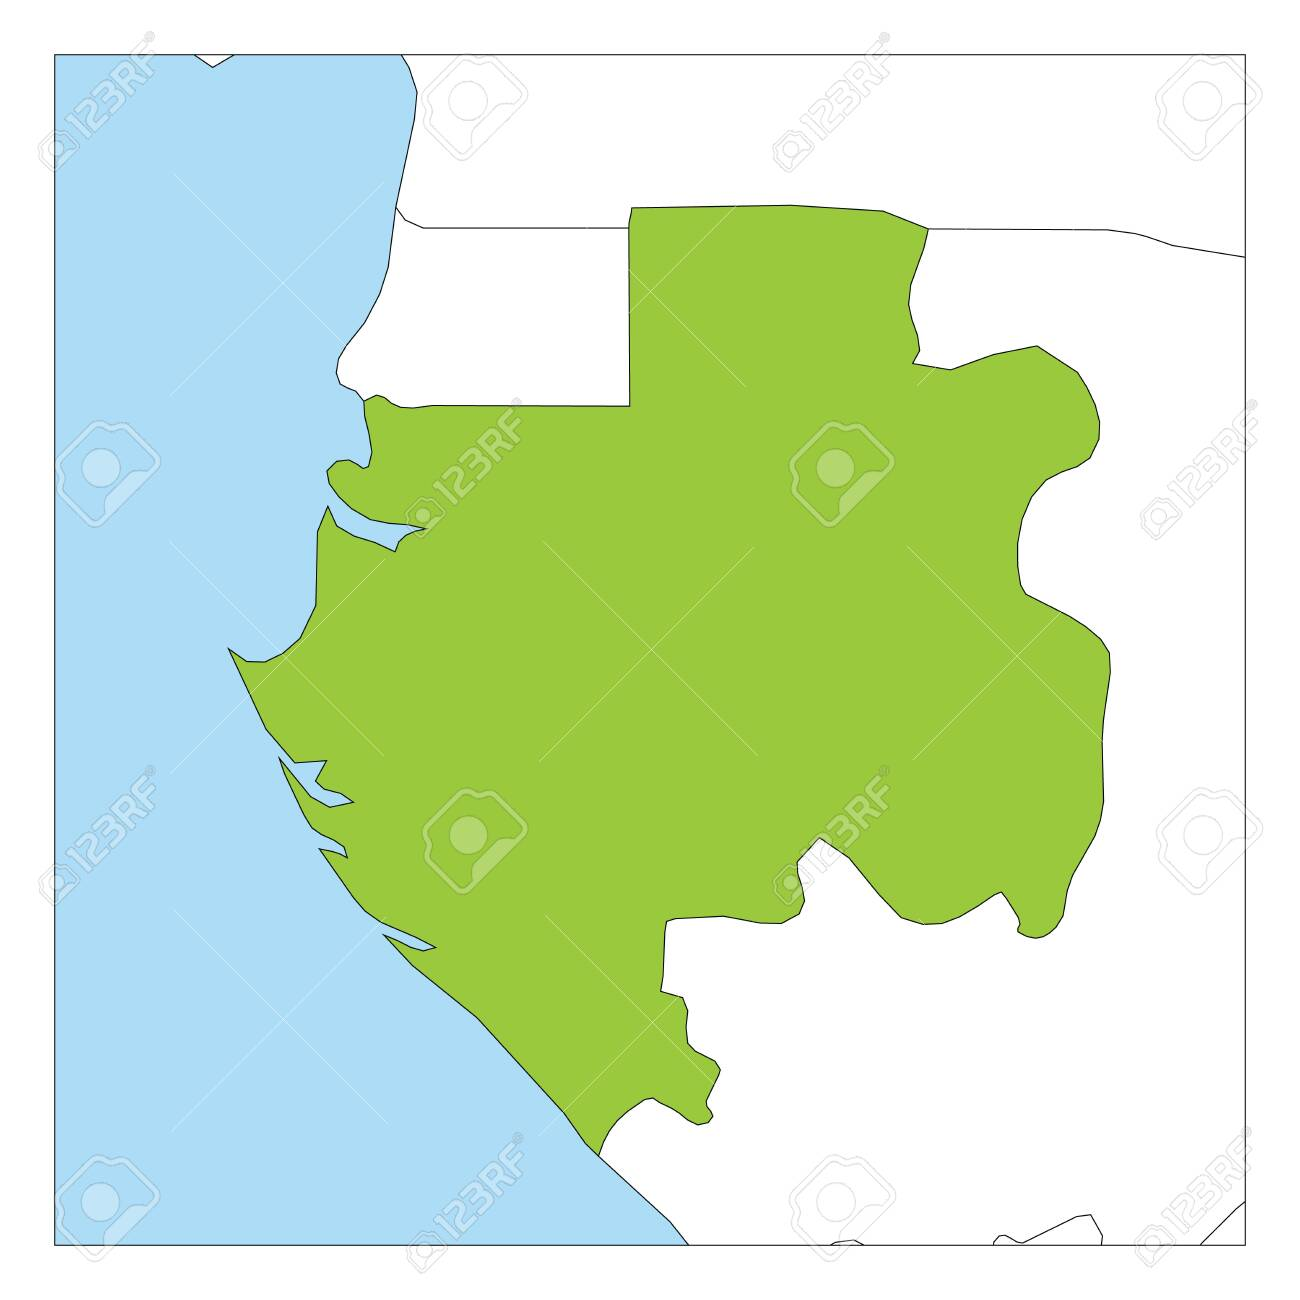 Map of Gabon green highlighted with neighbor countries. Map Gabon on namibia map, spain map, egypt map, haiti map, zaire map, mali map, swaziland map, cape verde map, tunisia map, congo map, botswana map, niger map, mozambique map, algeria map, angola map, french map, africa map, morocco map, bangladesh map, libreville map, sudan map, kenya map, ethiopia map, libya map, grenada map, uganda map, madagascar map, senegal map, the gambia map, liberia map, rwanda map, republique centrafricaine map, chad map, ghana map, malawi map, zambia map,